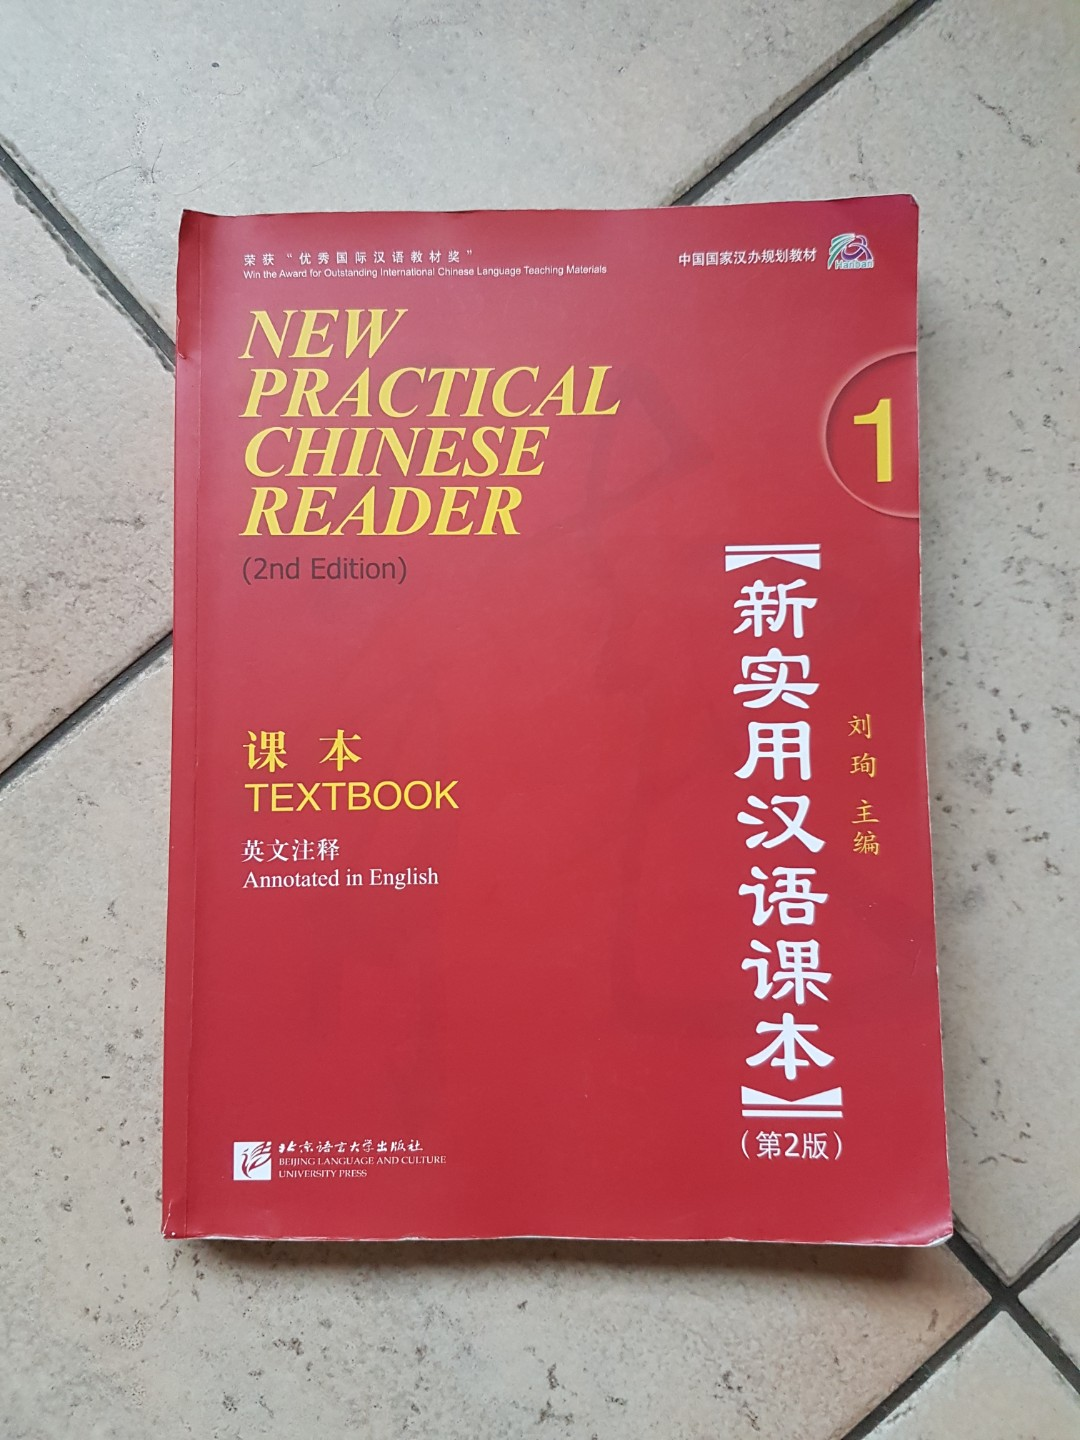 New practical chinese reader textbook books stationery textbooks photo photo photo photo fandeluxe Gallery